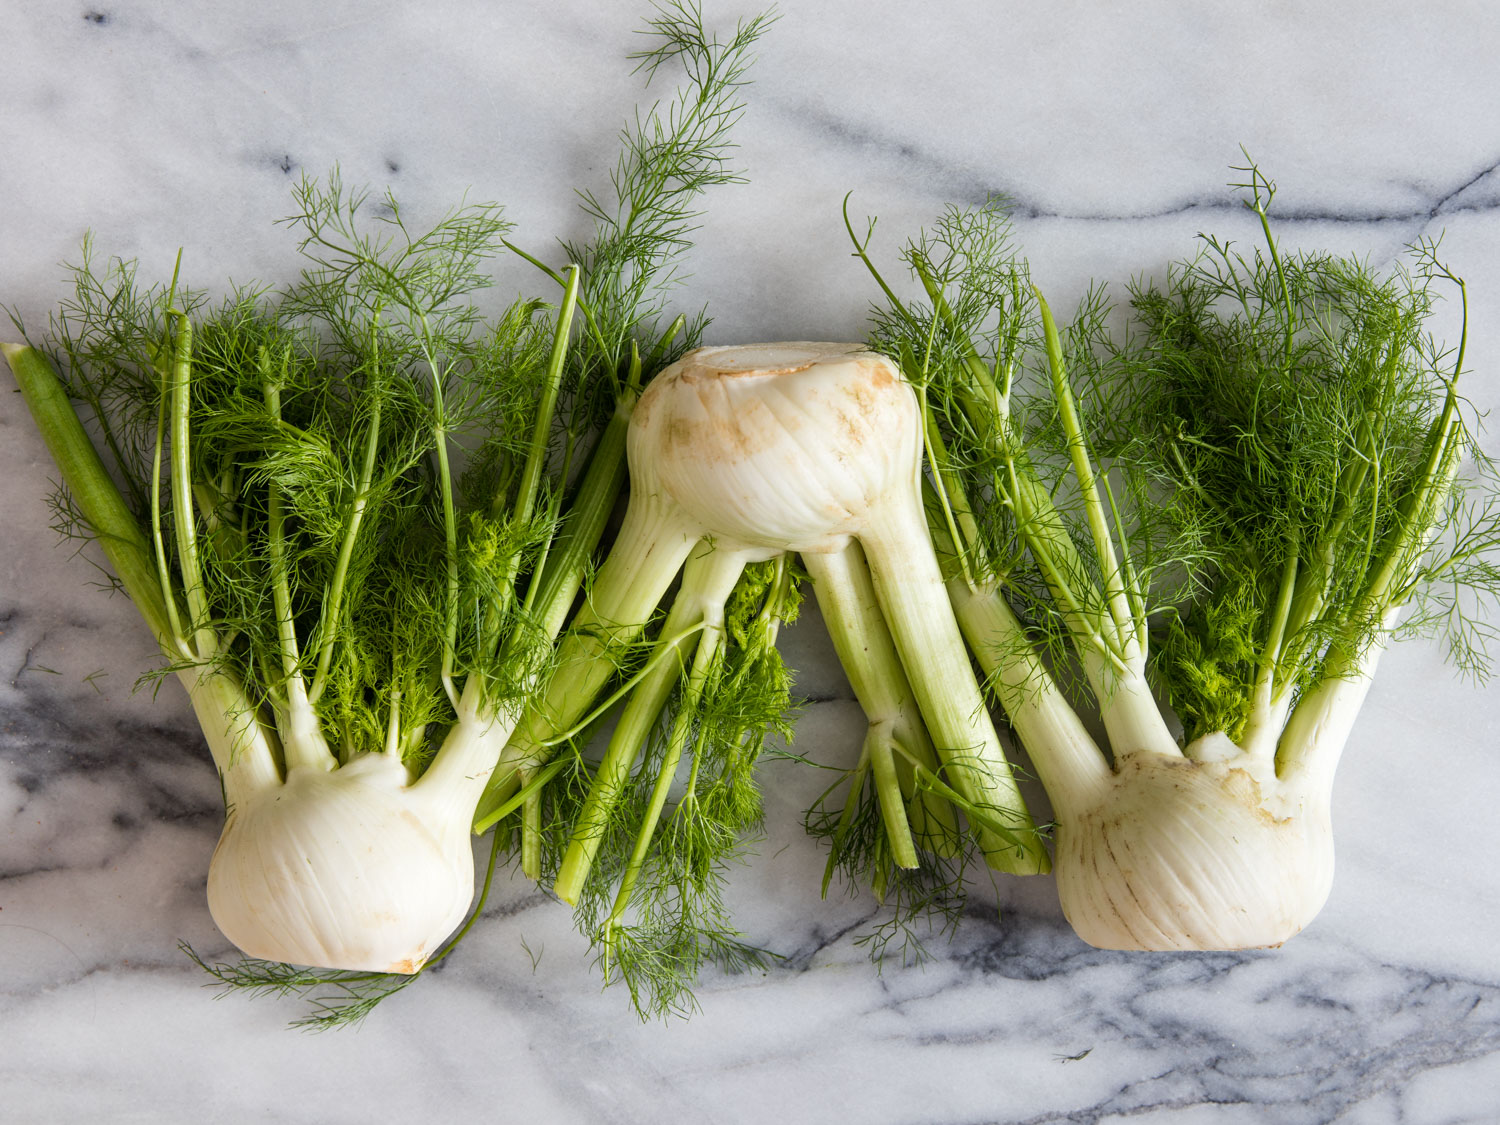 Fennel has history as old as the Mediterranean basin where it originated. The ancient Egyptians, Greeks & Romans all ate its aromatic fruits.